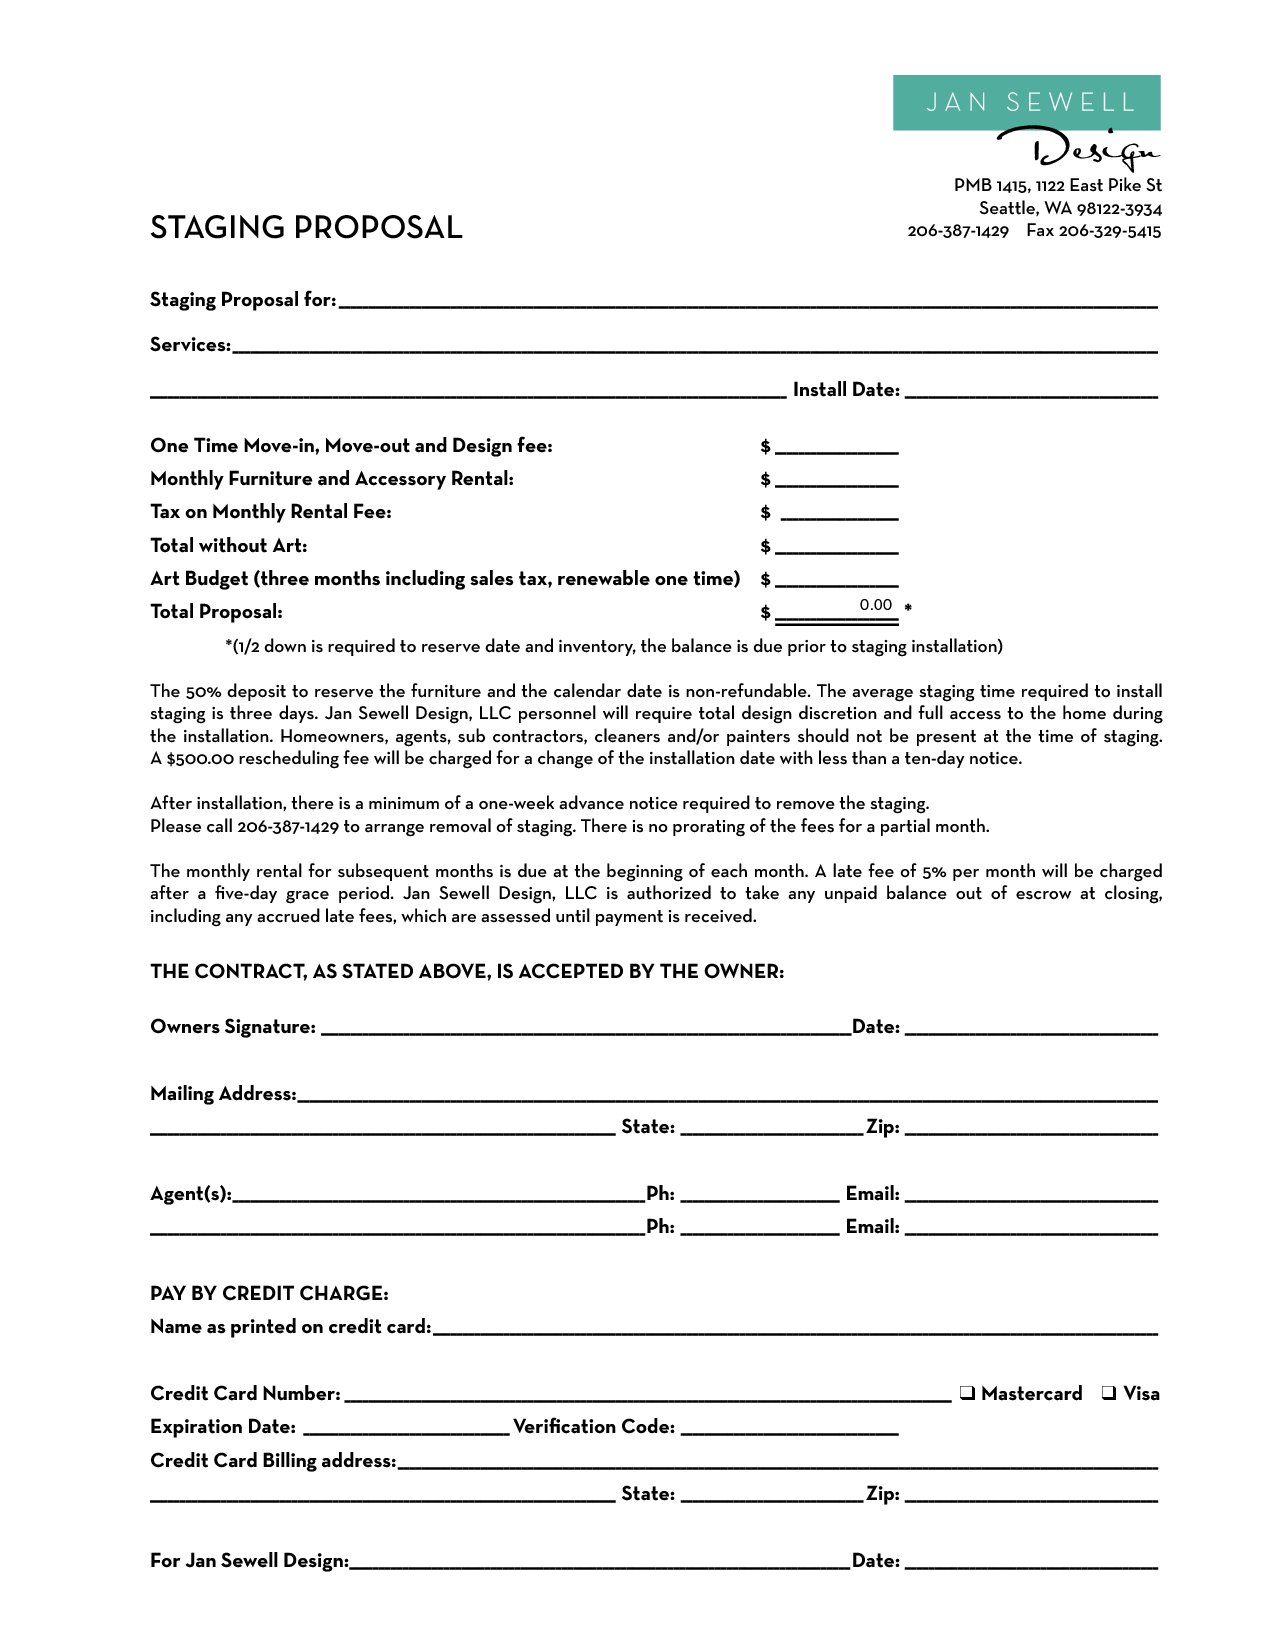 Home Staging Contract Template Bing Images Docu Contract